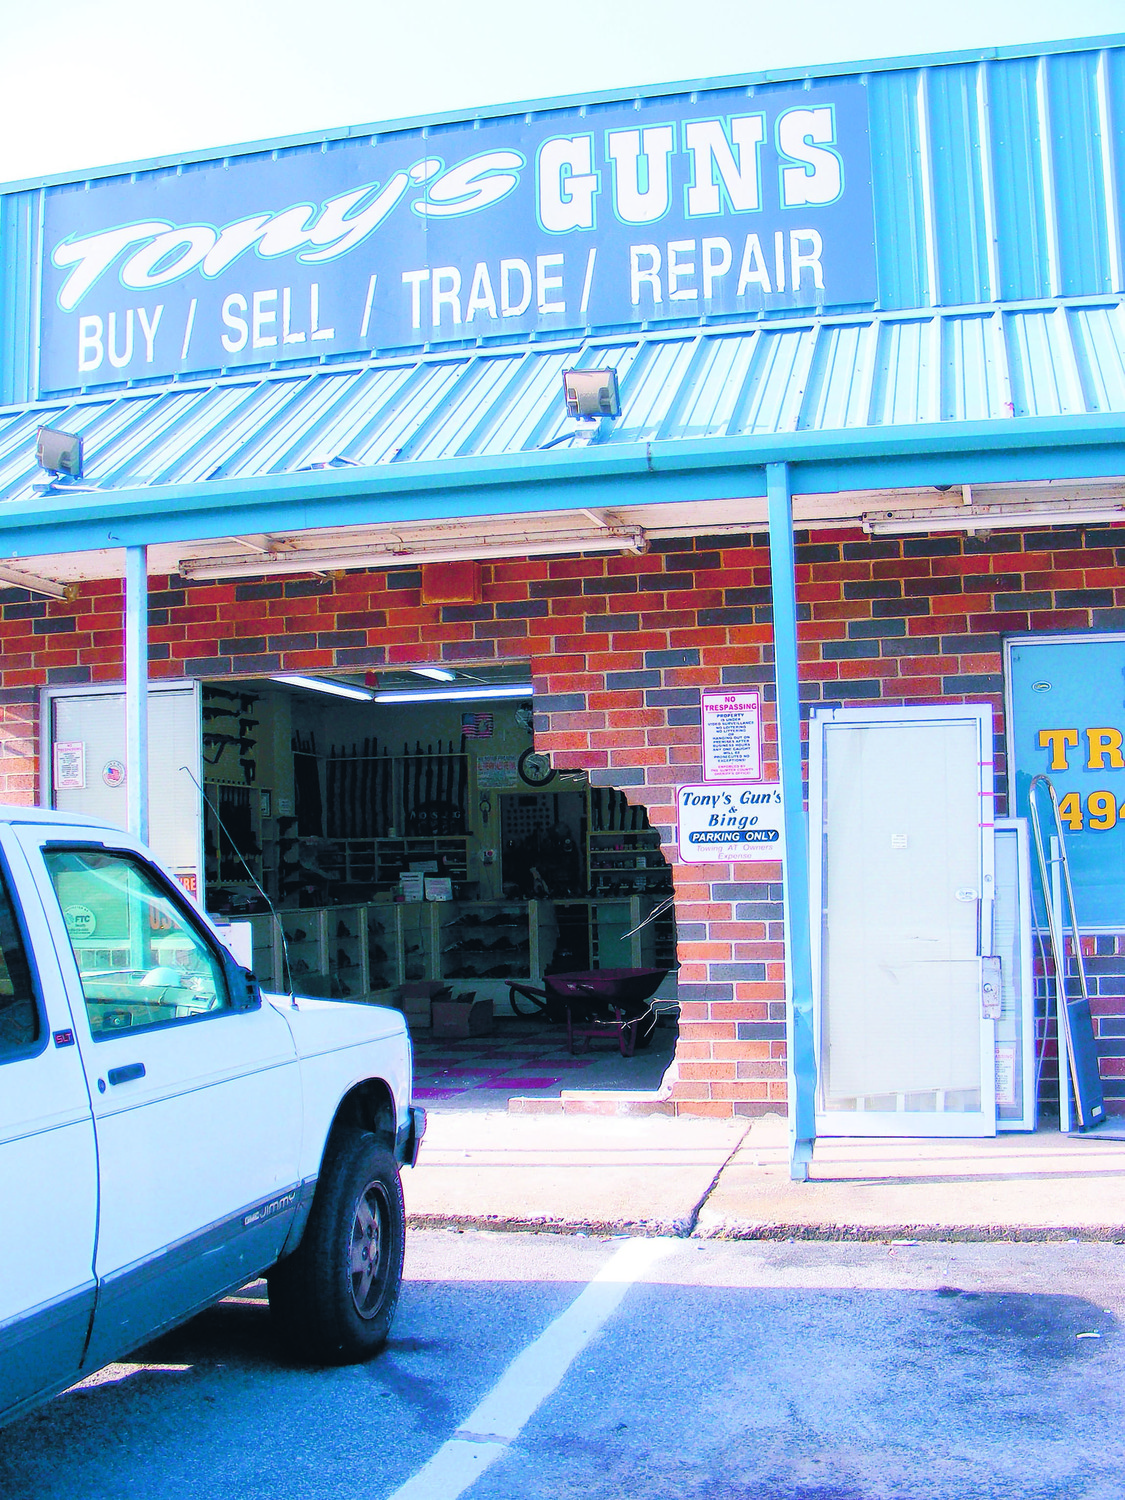 SUMTER ITEM FILE PHOTOThe front of Tony's Guns on Broad Street is shown a few hours after an August 2016 robbery. According to store owner, Tony Ashy, the perpetrator(s) backed a pickup truck into the building to gain access to the weapons.